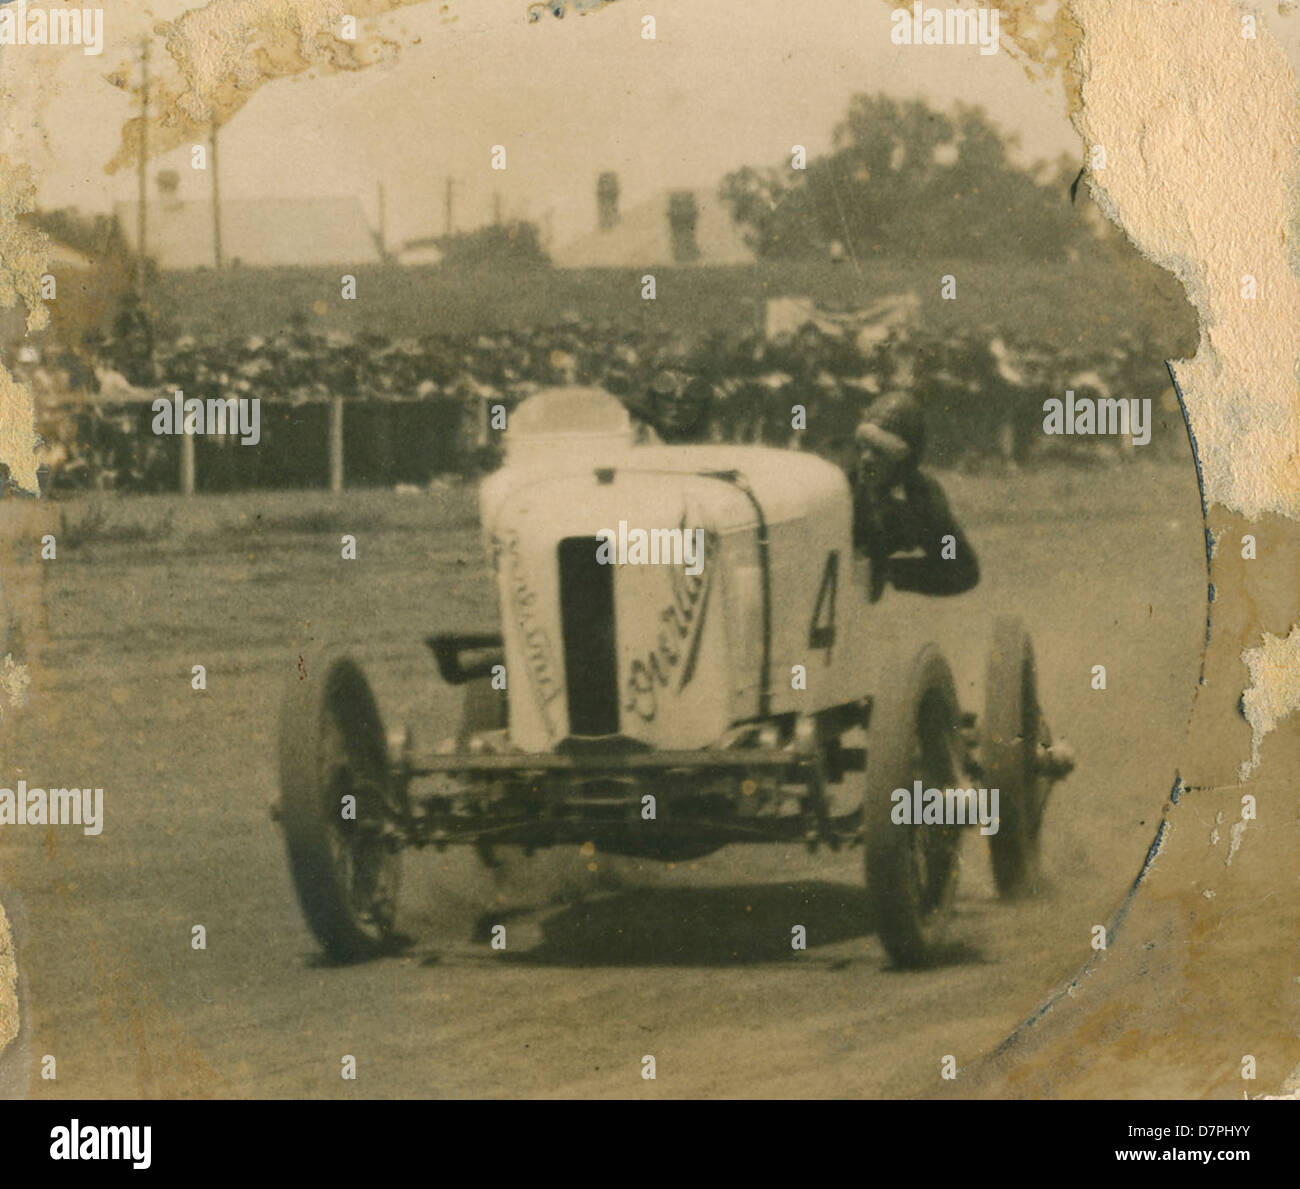 Don Harkness at the wheel of his Overland Sports car 'Whitey' at race meeting, 1920 - 1929 - Stock Image